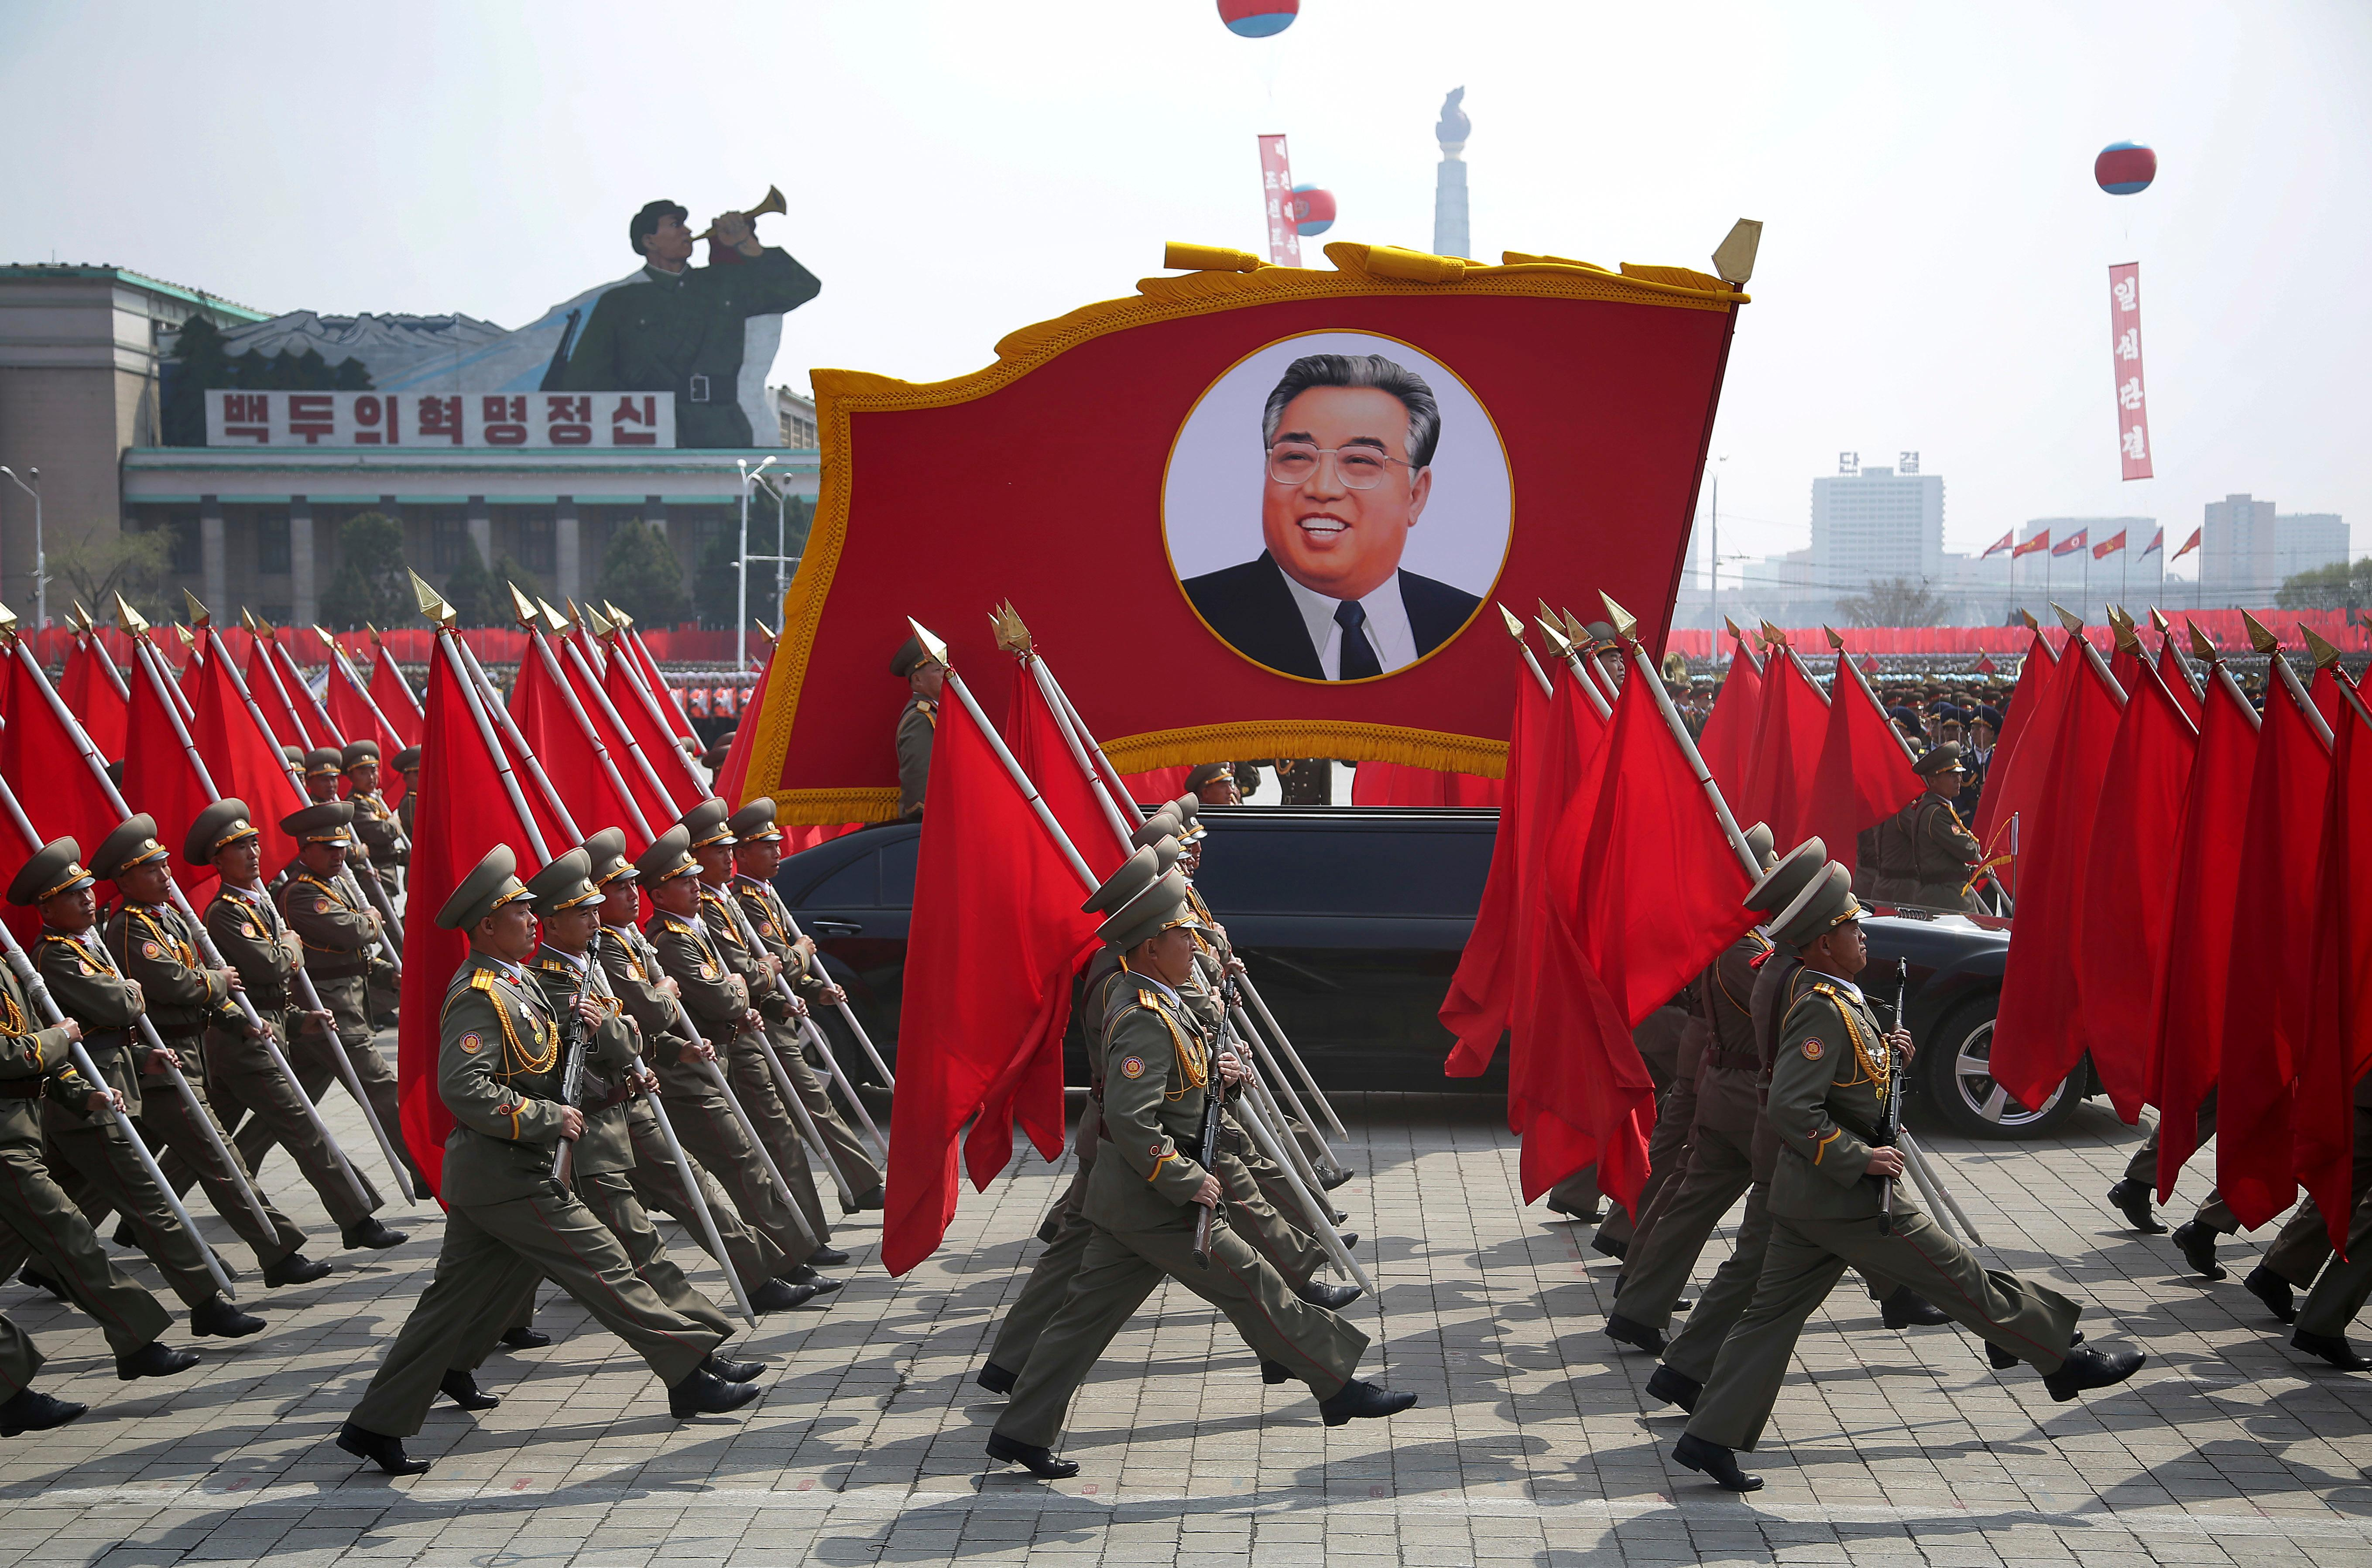 North Korean soldiers carry flags and a photo of late leader Kim Il Sung as they march across Kim Il Sung Square during a military parade on Saturday, April 15, 2017, in Pyongyang, North Korea to celebrate the 105th birth anniversary of Kim Il Sung, the country's late founder and grandfather of current ruler Kim Jong Un. (AP Photo/Wong Maye-E)